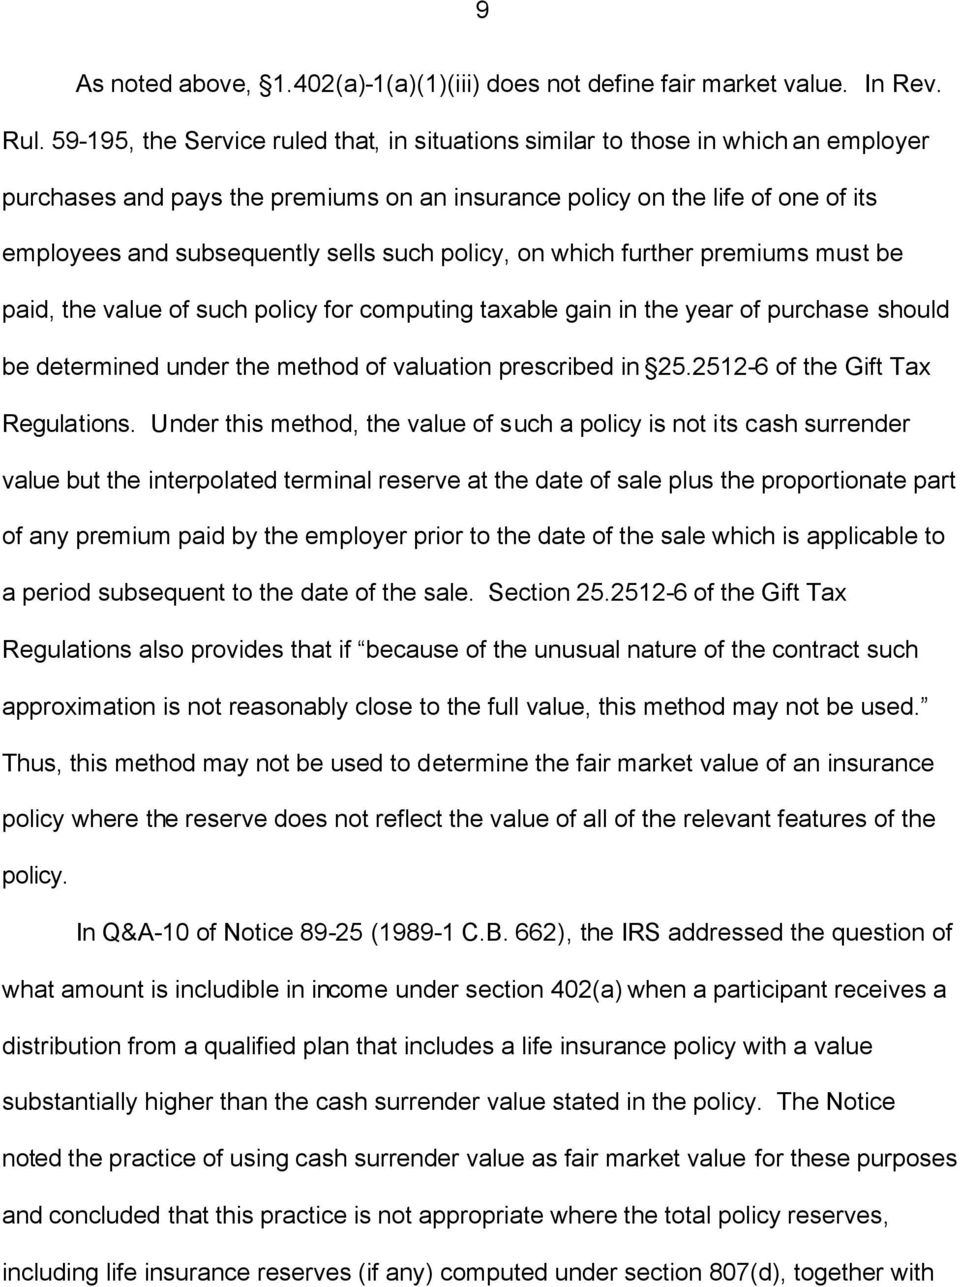 such policy, on which further premiums must be paid, the value of such policy for computing taxable gain in the year of purchase should be determined under the method of valuation prescribed in 25.